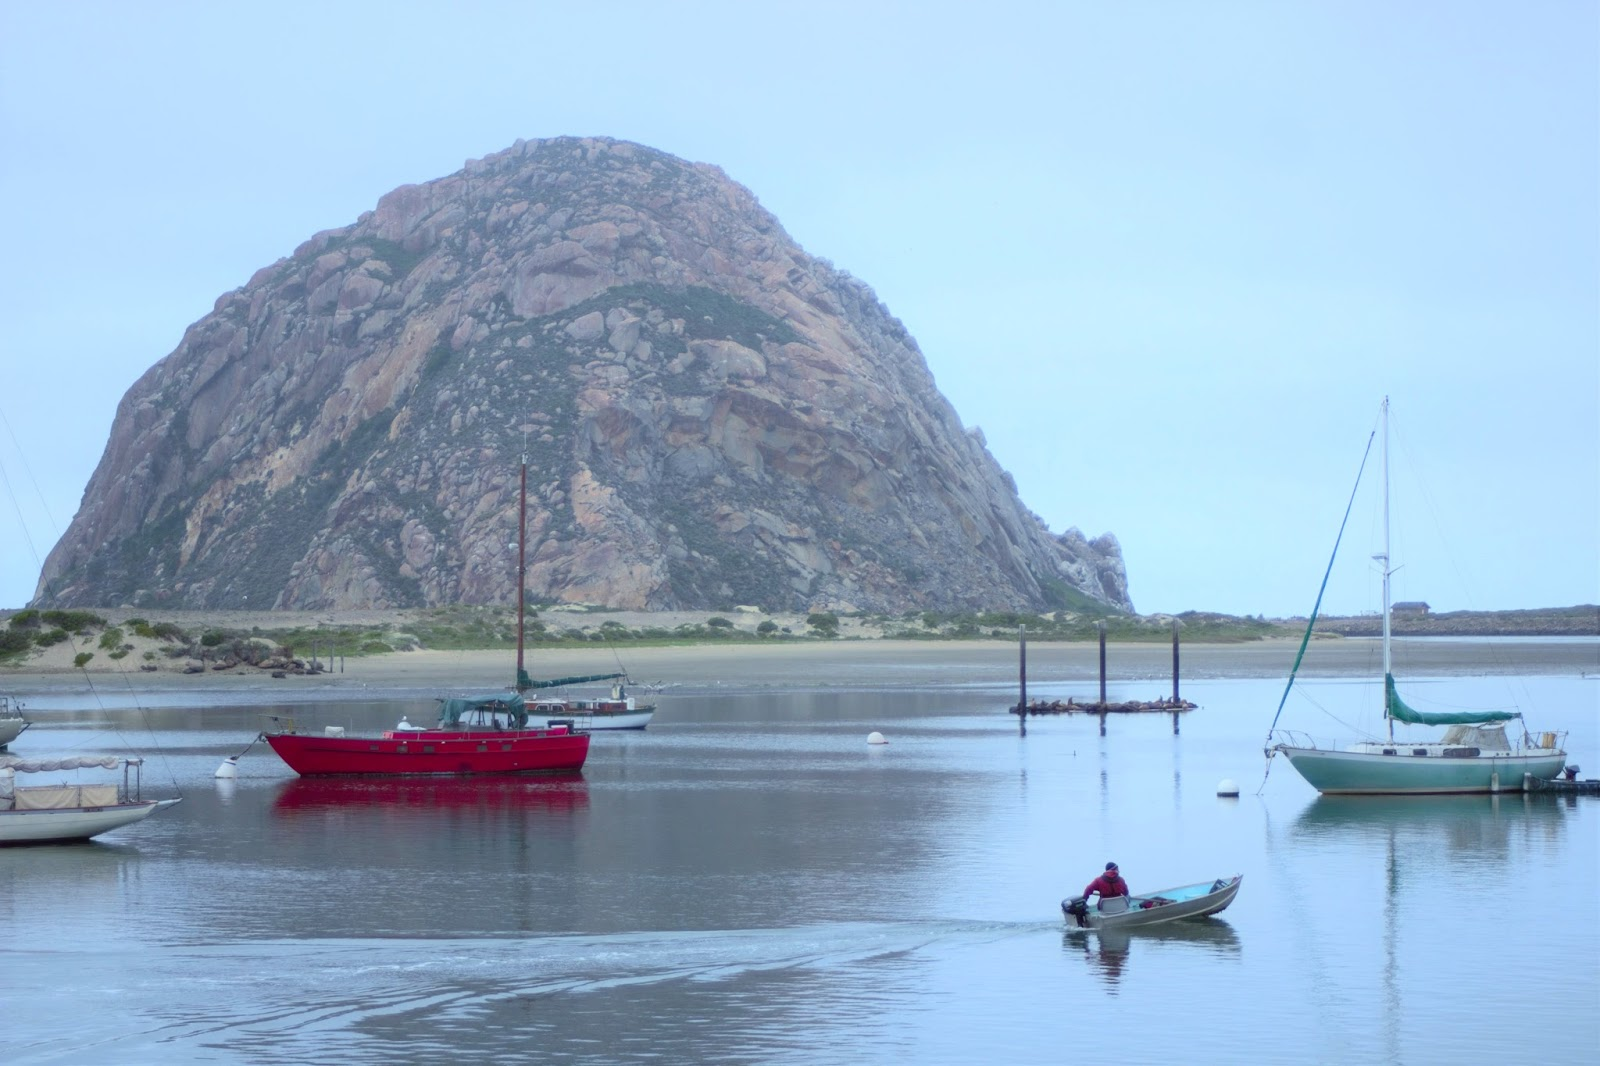 Destination morro bay for Morro bay fishing